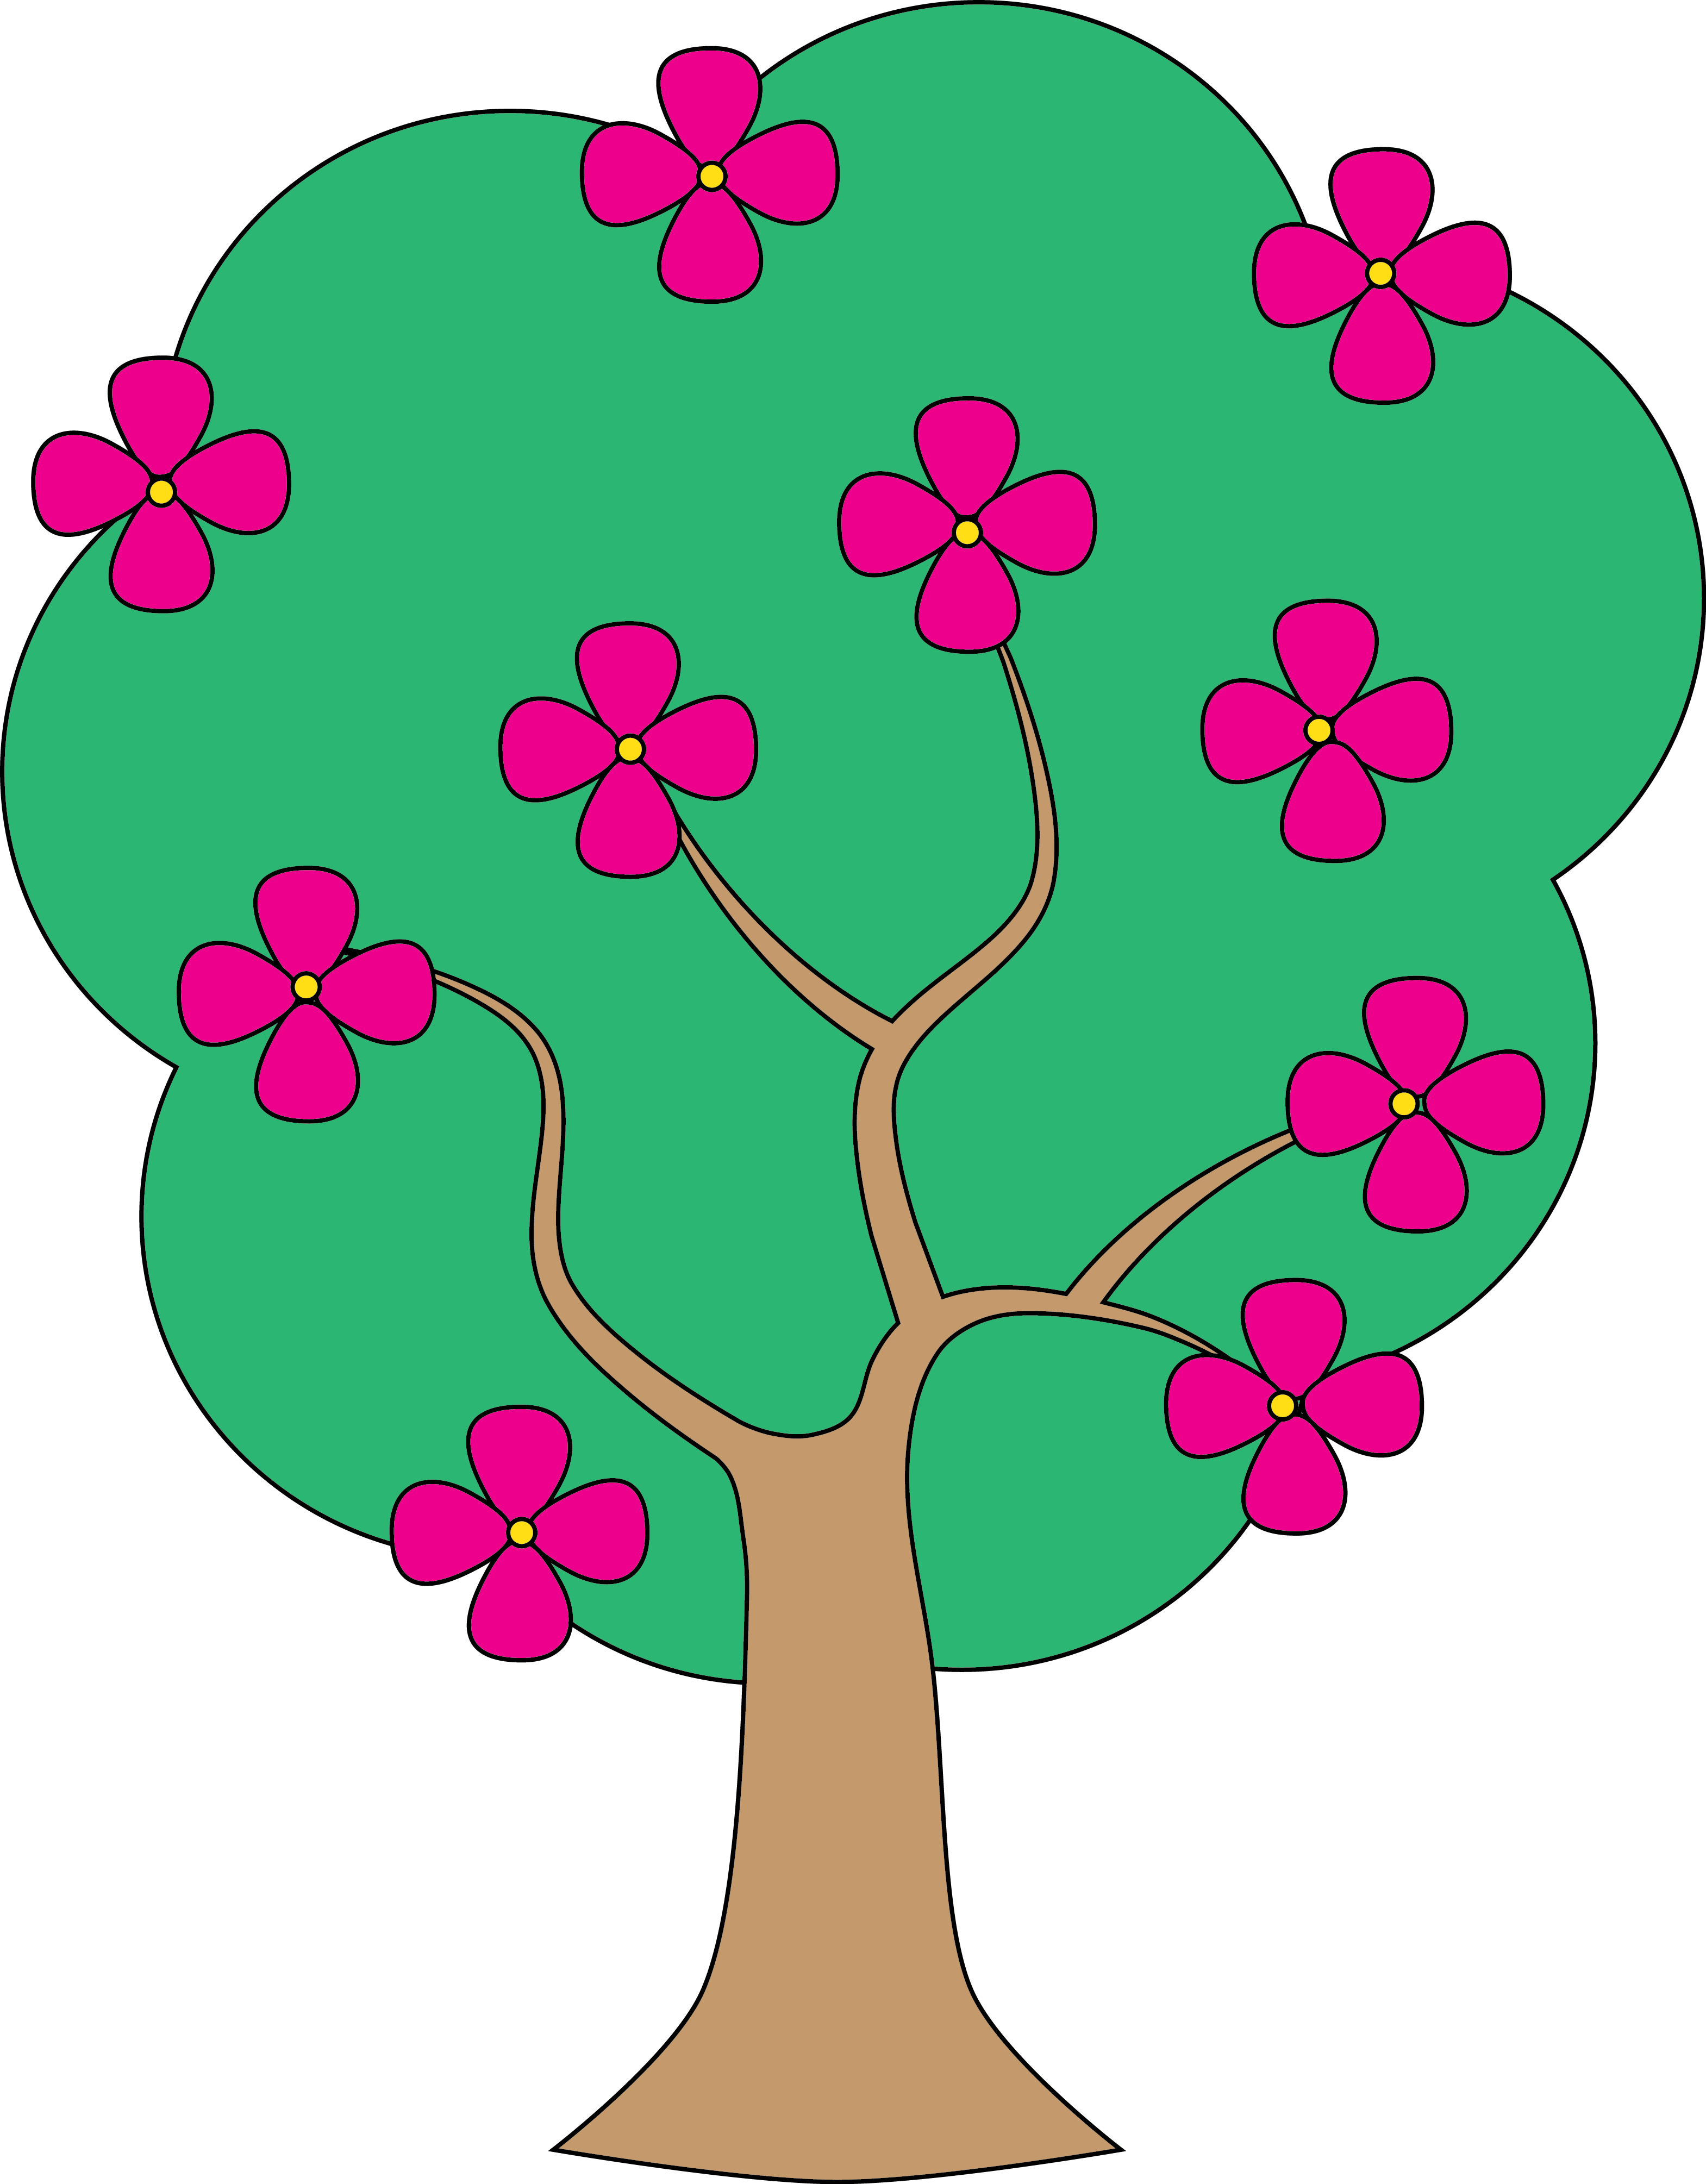 Apple blossom flower clipart picture transparent 28+ Collection of Tree Flower Clipart | High quality, free cliparts ... picture transparent